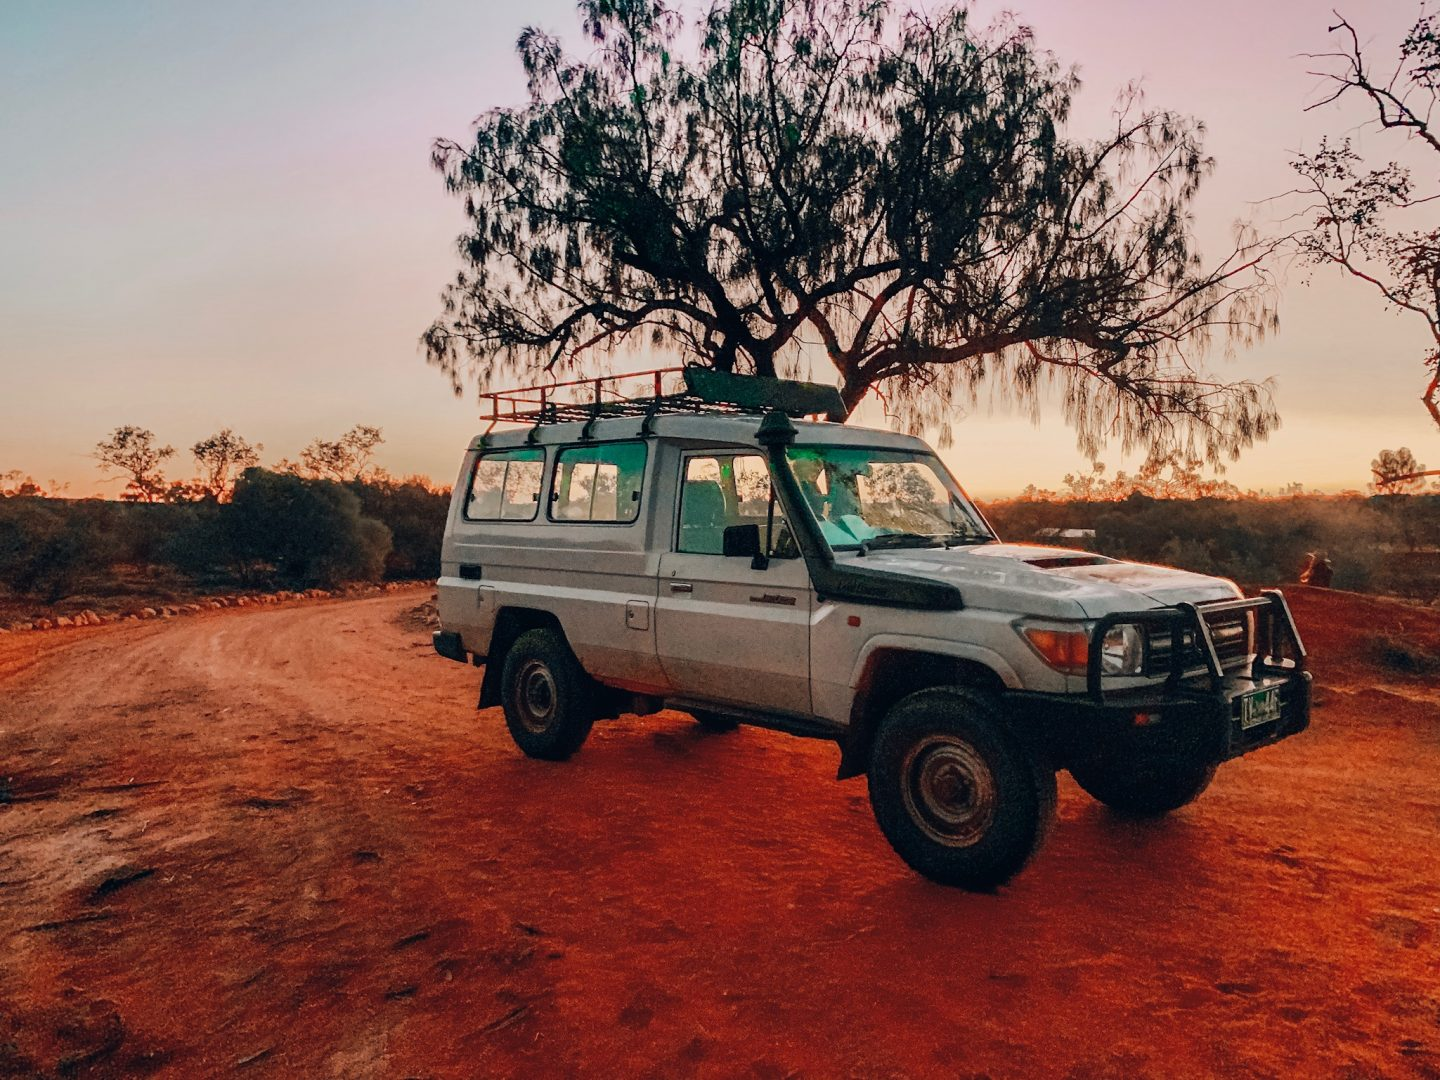 Our campsite at Kings Canyon in the Outback, Australia.